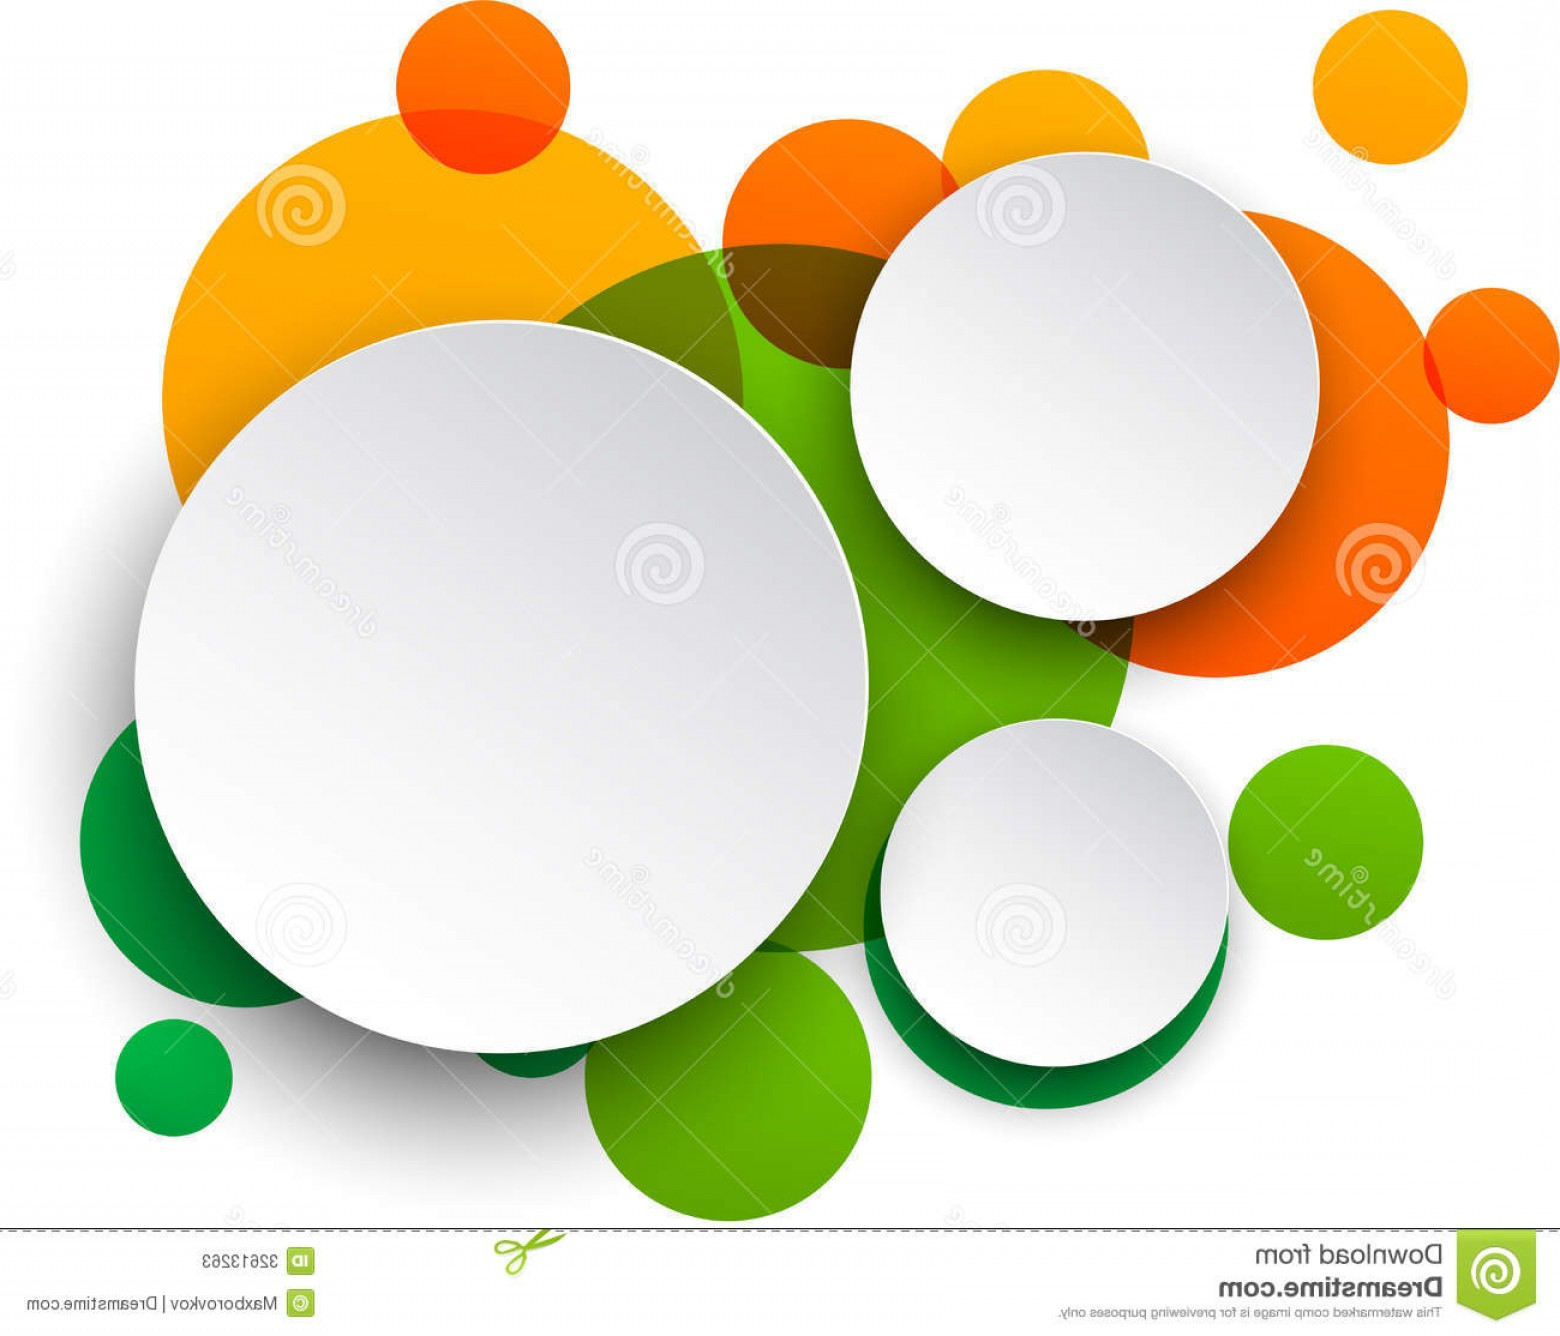 Vector Bubbles Circle: Stock Photos Paper White Round Speech Bubbles Vector Illustration Over Colorful Background Eps Image